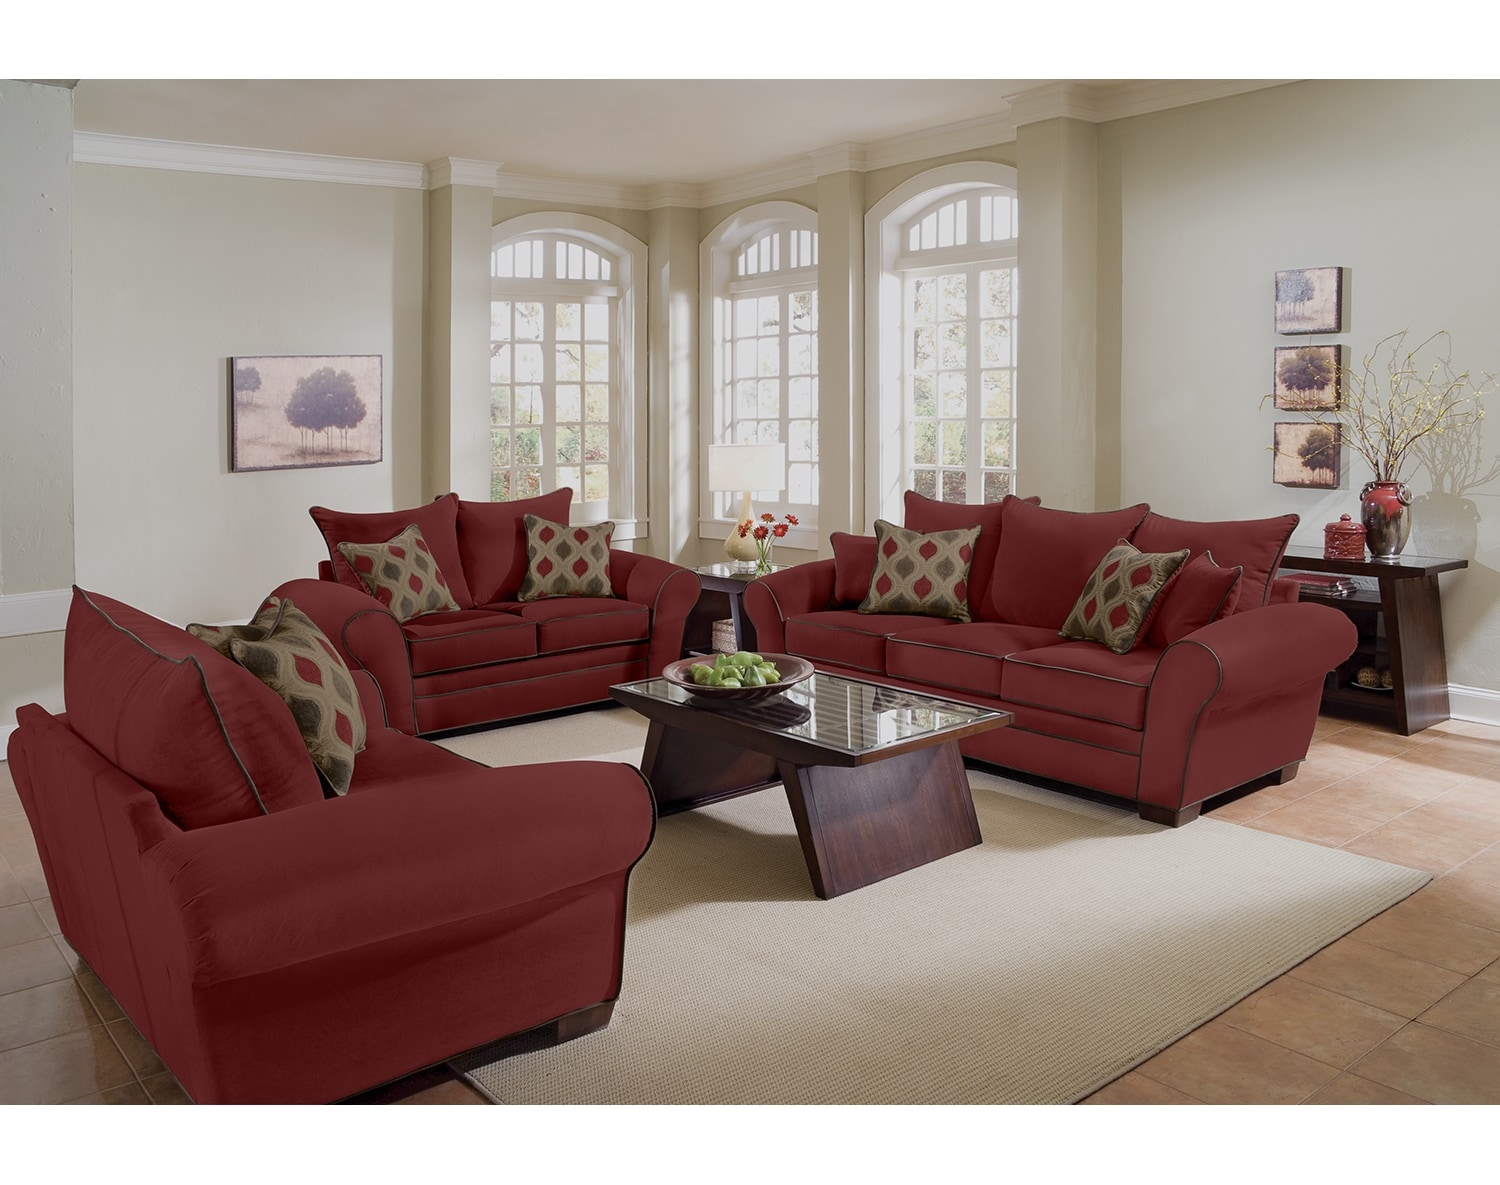 Living Room Furniture - The Strauss Wine Collection - Sofa